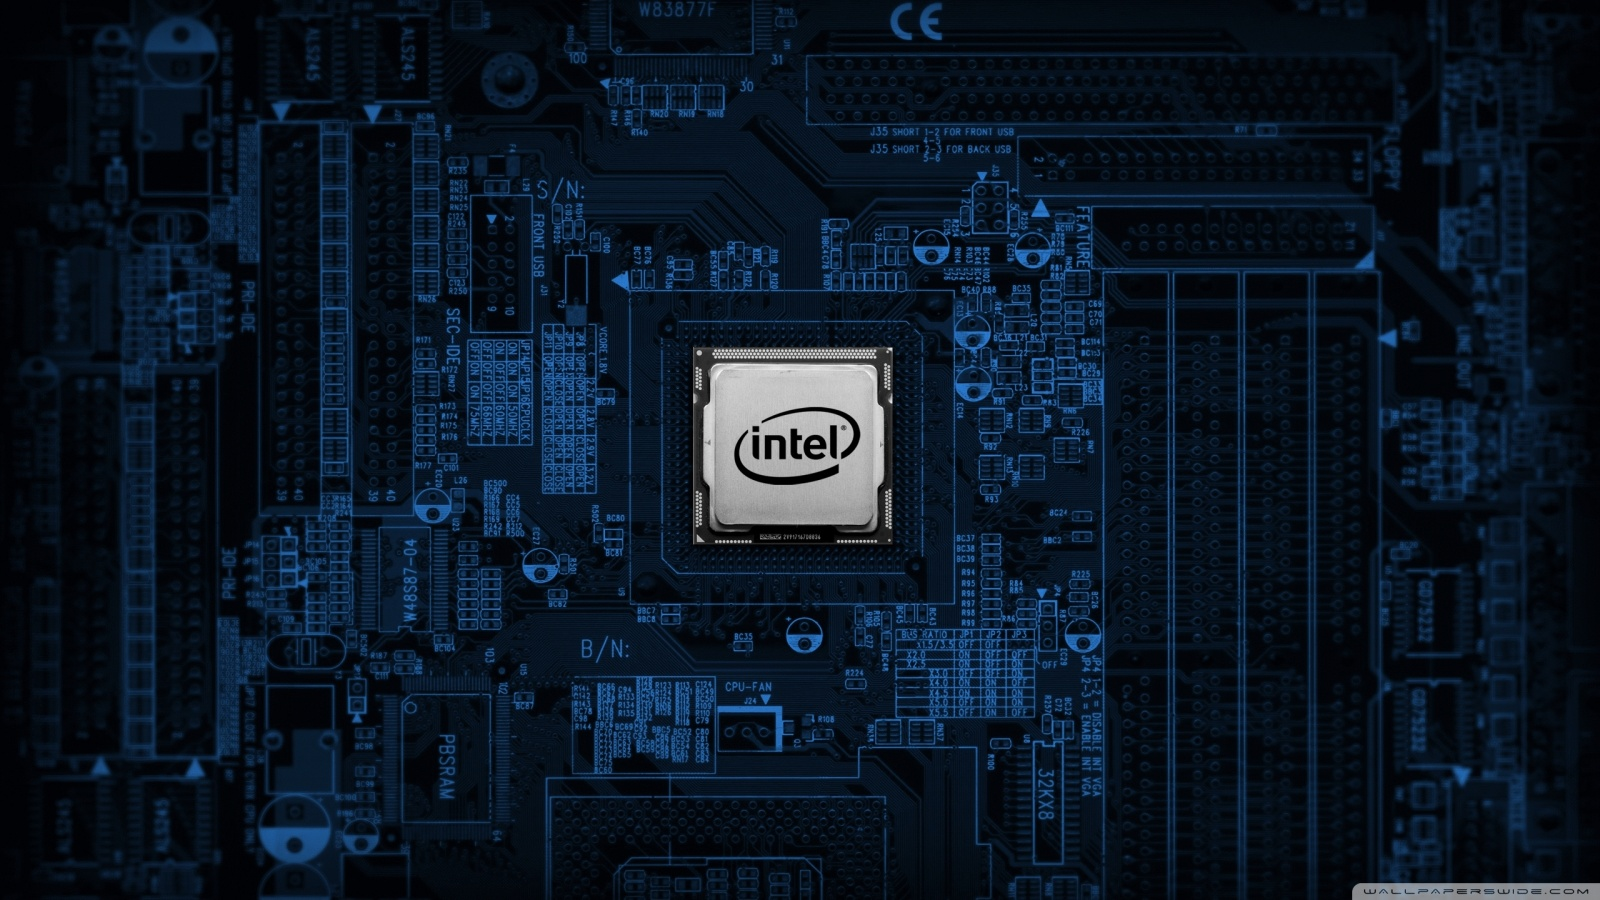 Intel Motherboard 4K HD Desktop Wallpaper for 4K Ultra HD TV 1600x900